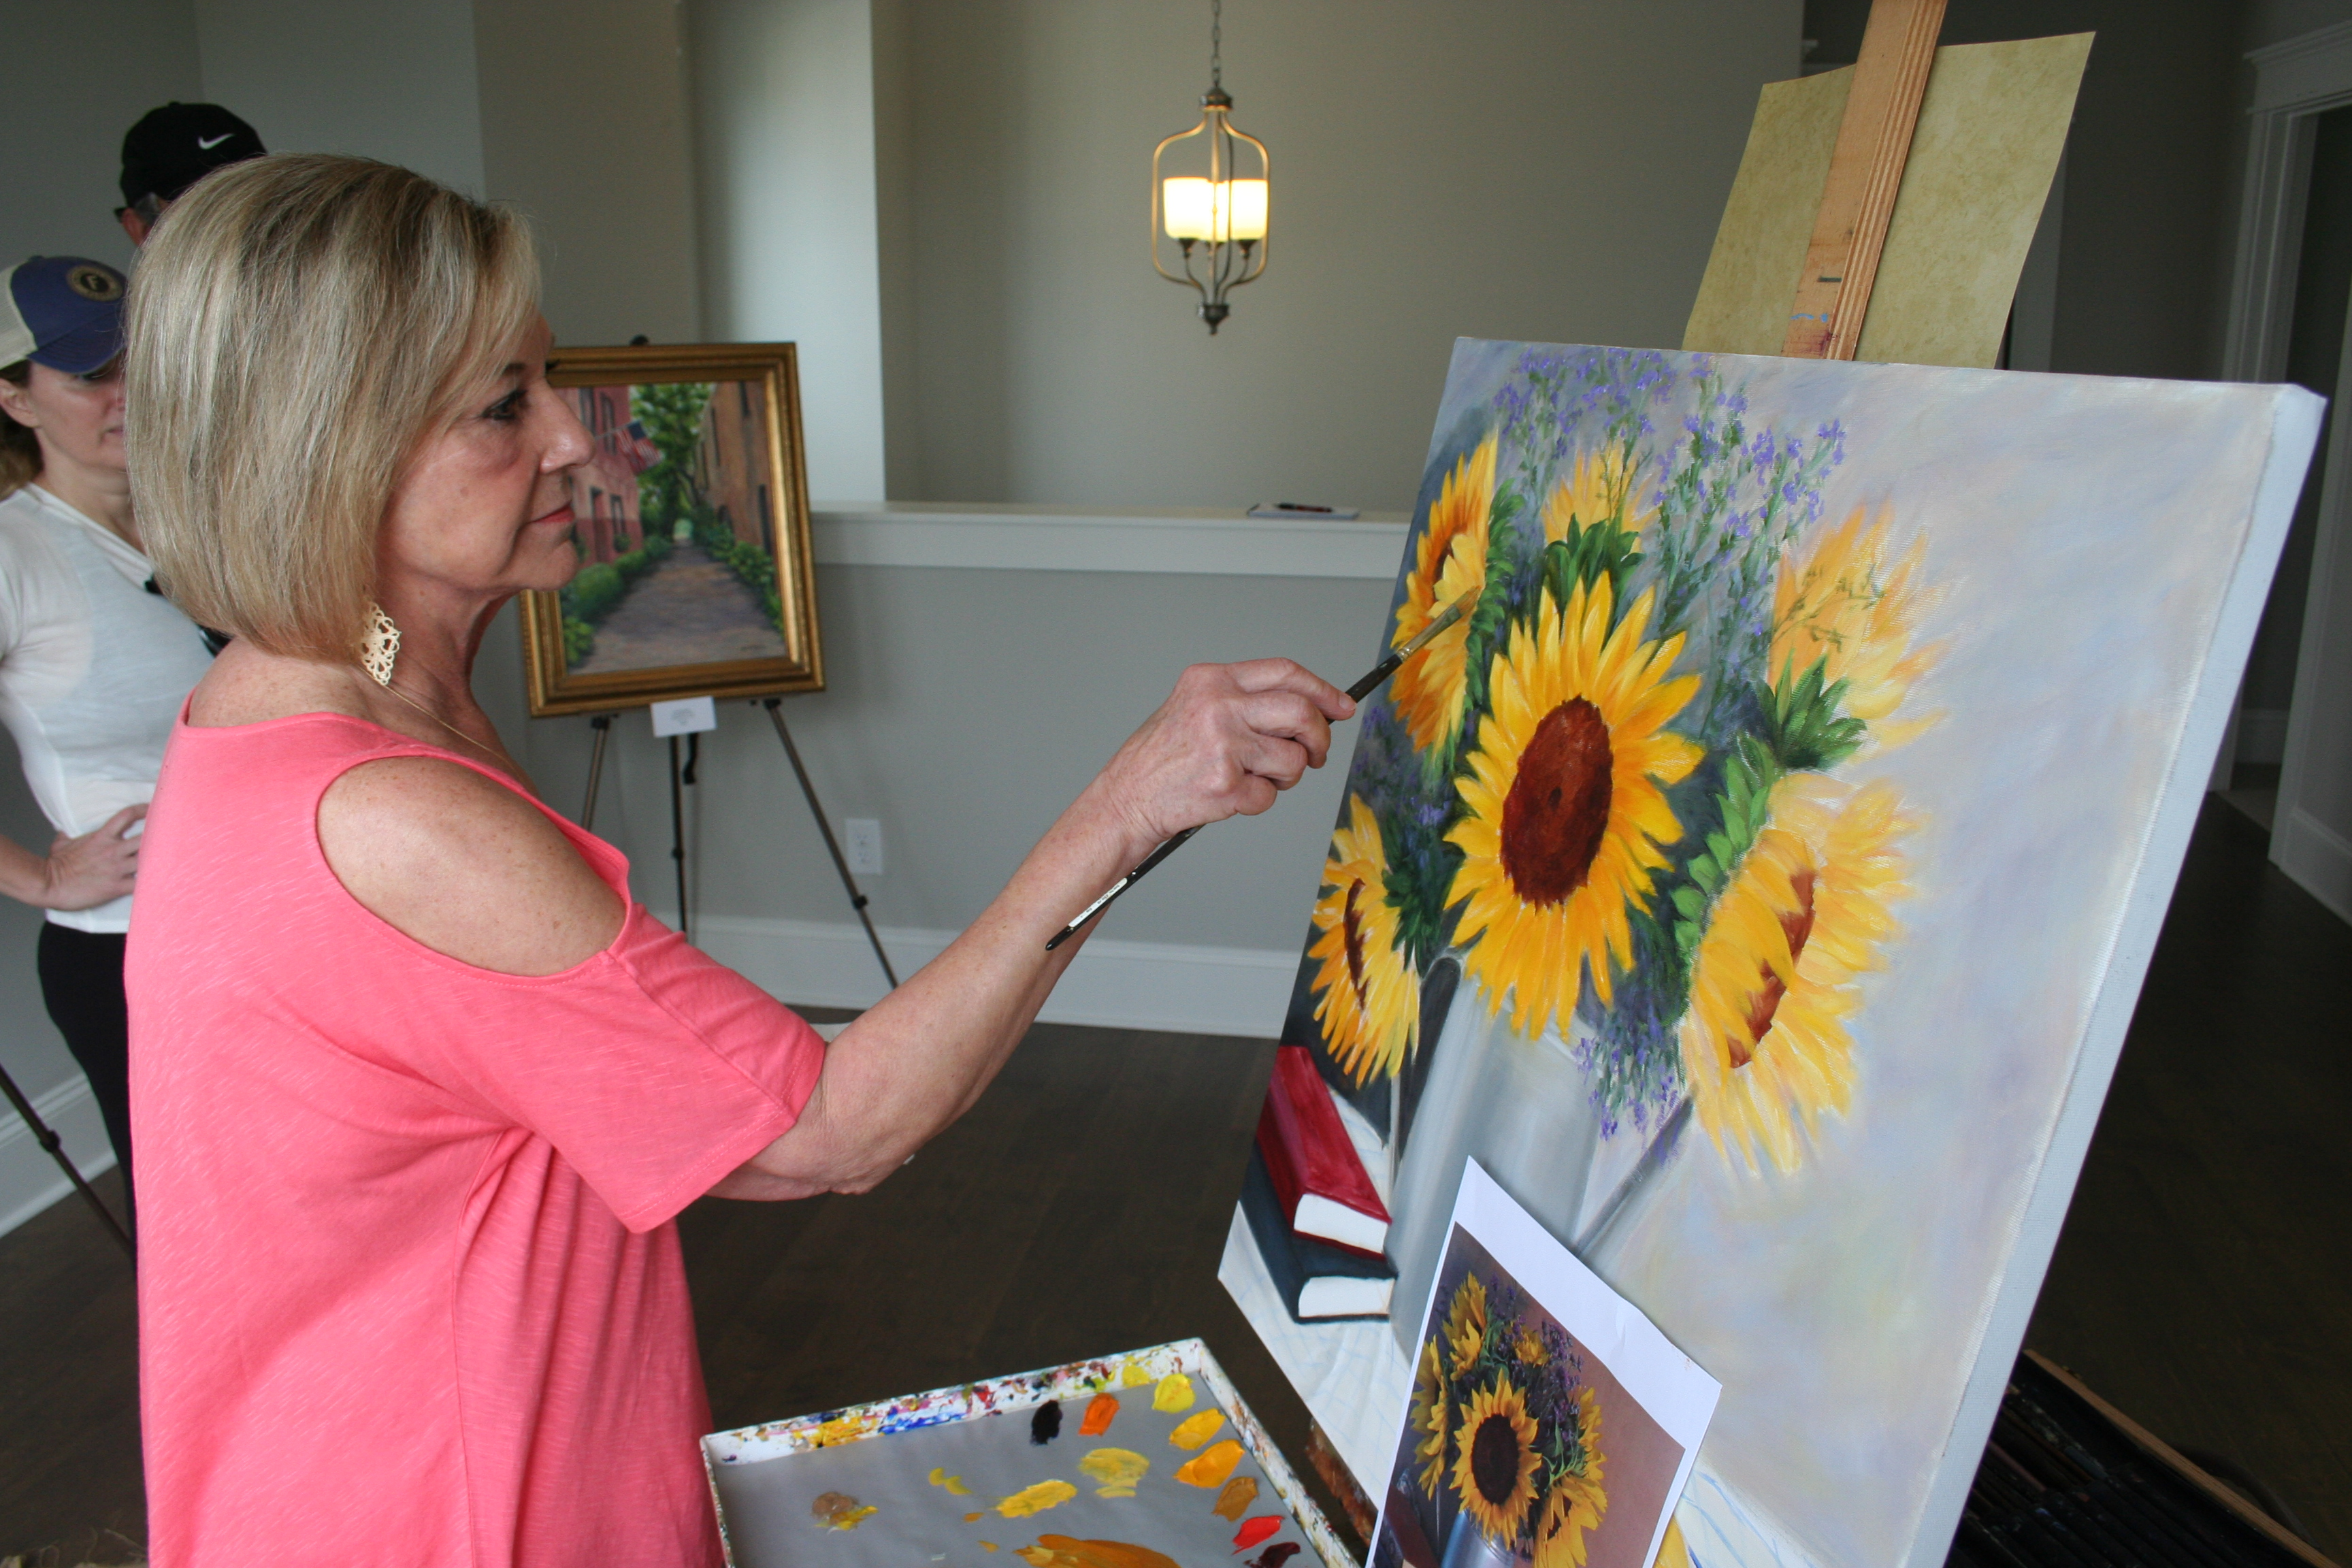 Teresa Jones perfects a painting of sunflowers during an open house at a David Weekley home on Bellona Street last weekend.